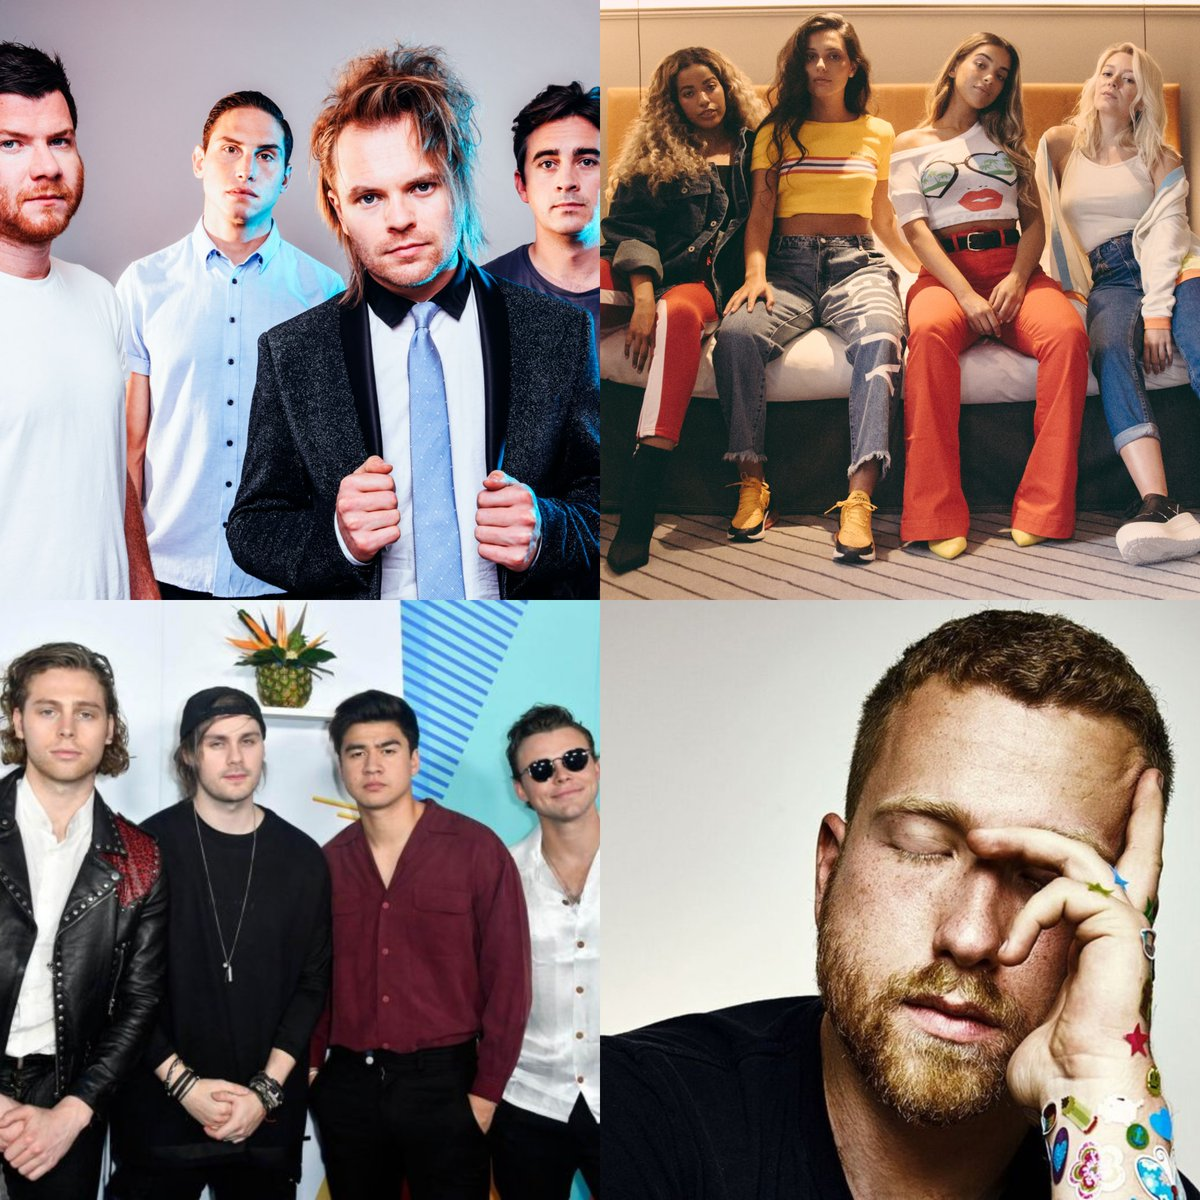 #newmusic with @simonDJwilson from  ✅ @ENTERSHIKARI 🤘 ✅ @FourOfDiamonds 💎 ✅ @5SOS 🌞 ✅ @jpsaxe 🌍  Simon also gives his @BRITs predictions 🏆  All from 4!